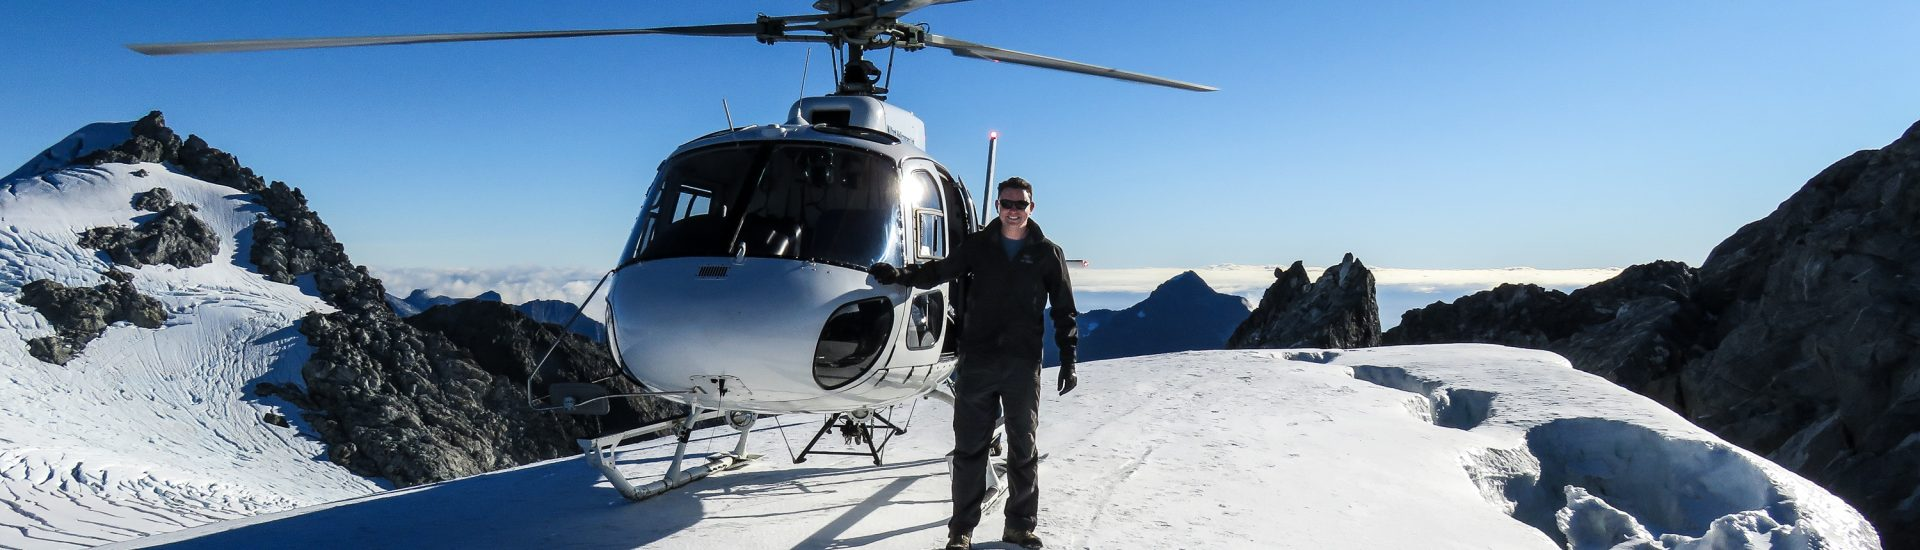 Mark is an Airline Pilot who is on a mission to inspire and inform you about his two, Flying and Travel. Having travelled the world, including all 7 continents, he is here to help you travel the world with inspiring destinations and expert flying and travel tips.